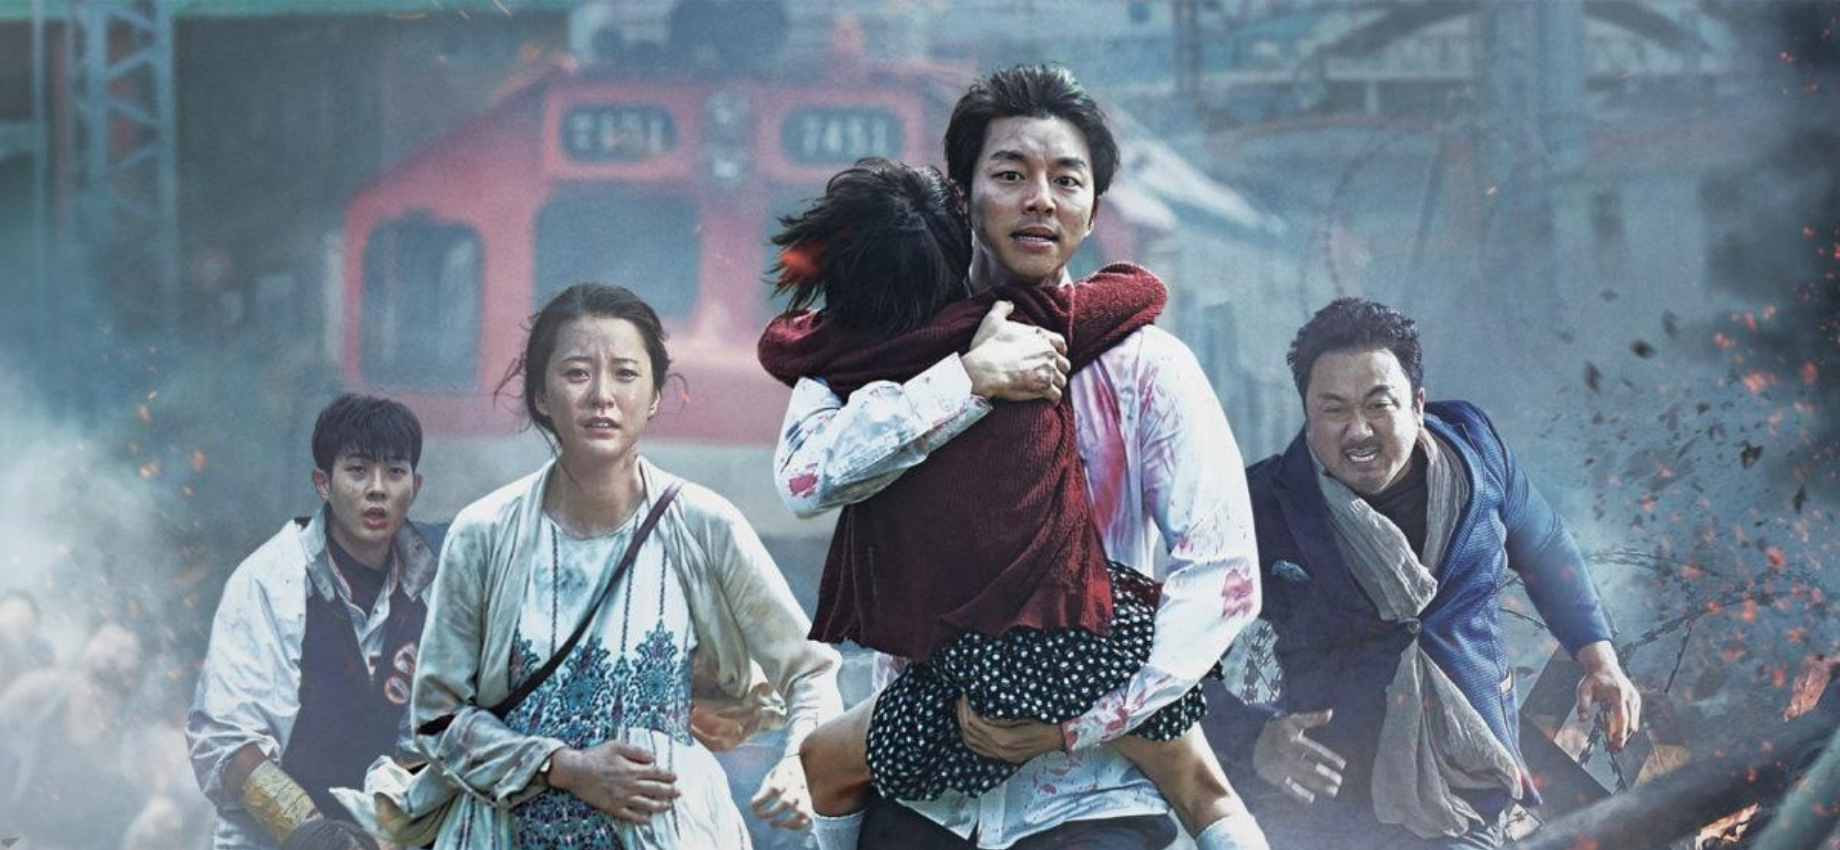 You Need to Stop Sleeping on 'Train to Busan'